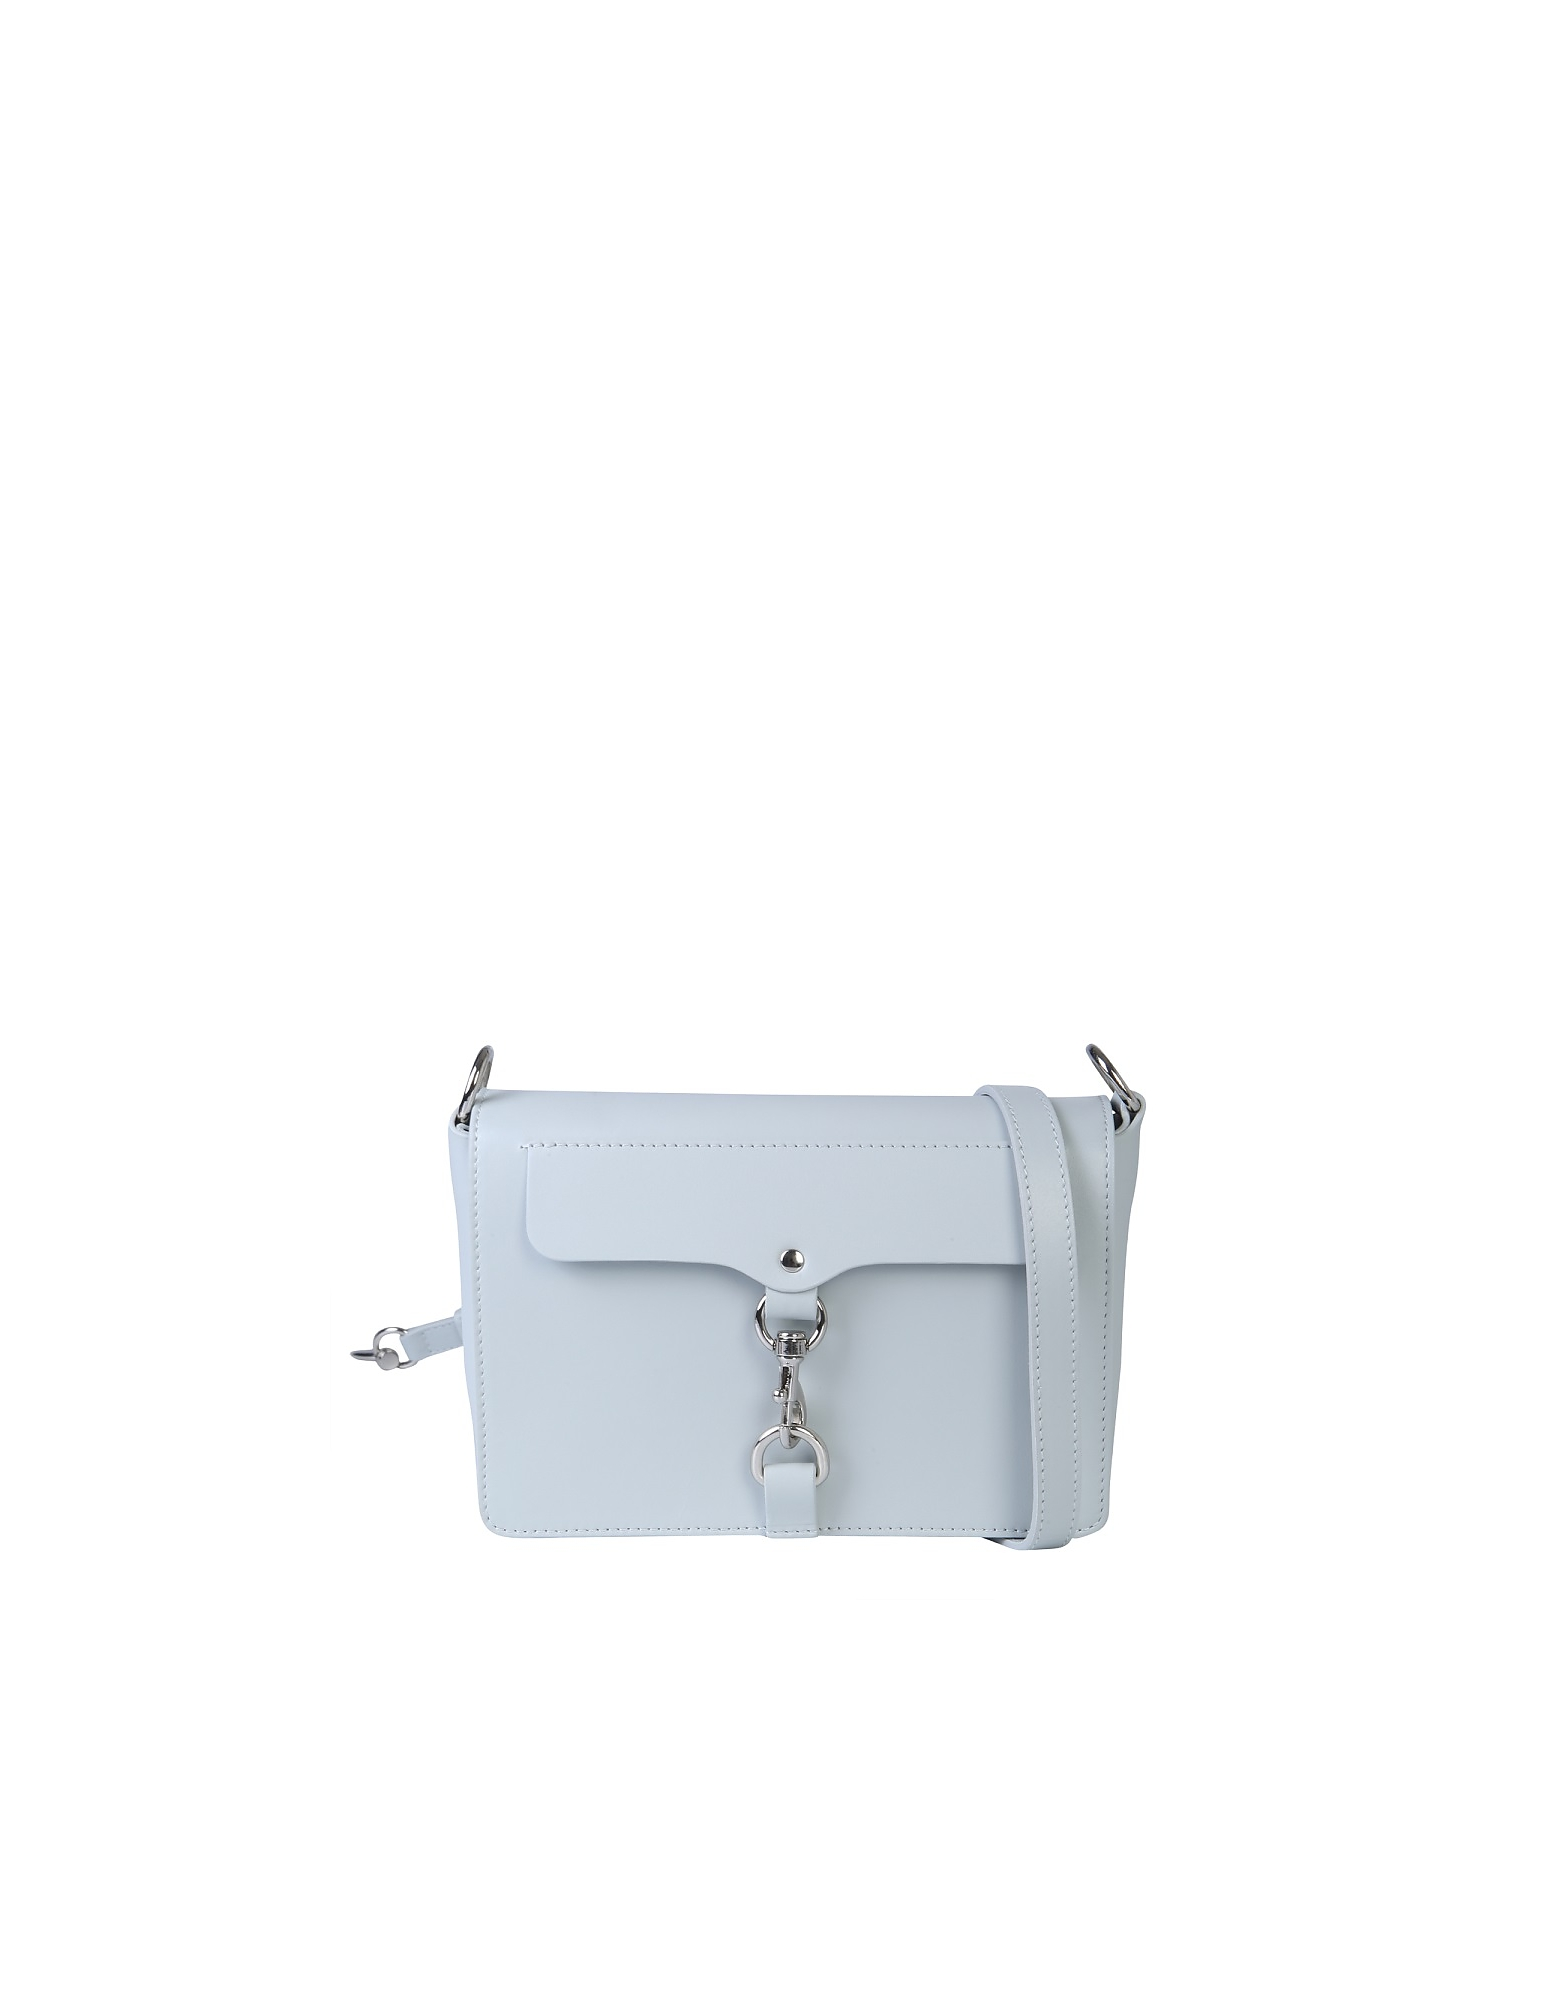 Rebecca Minkoff Designer Handbags, Mab Flap Bag